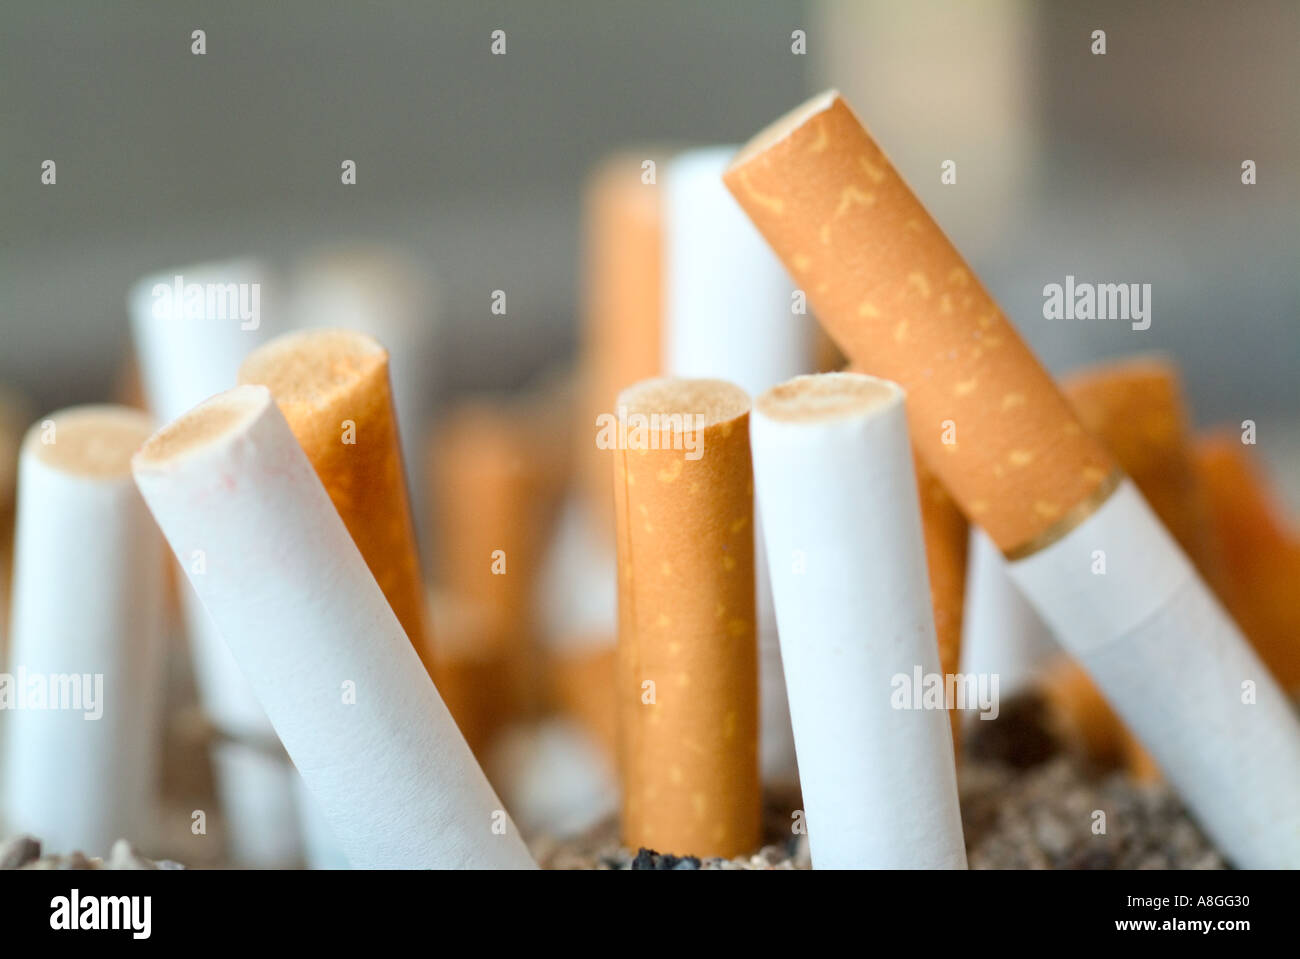 Cigarette butts - Stock Image